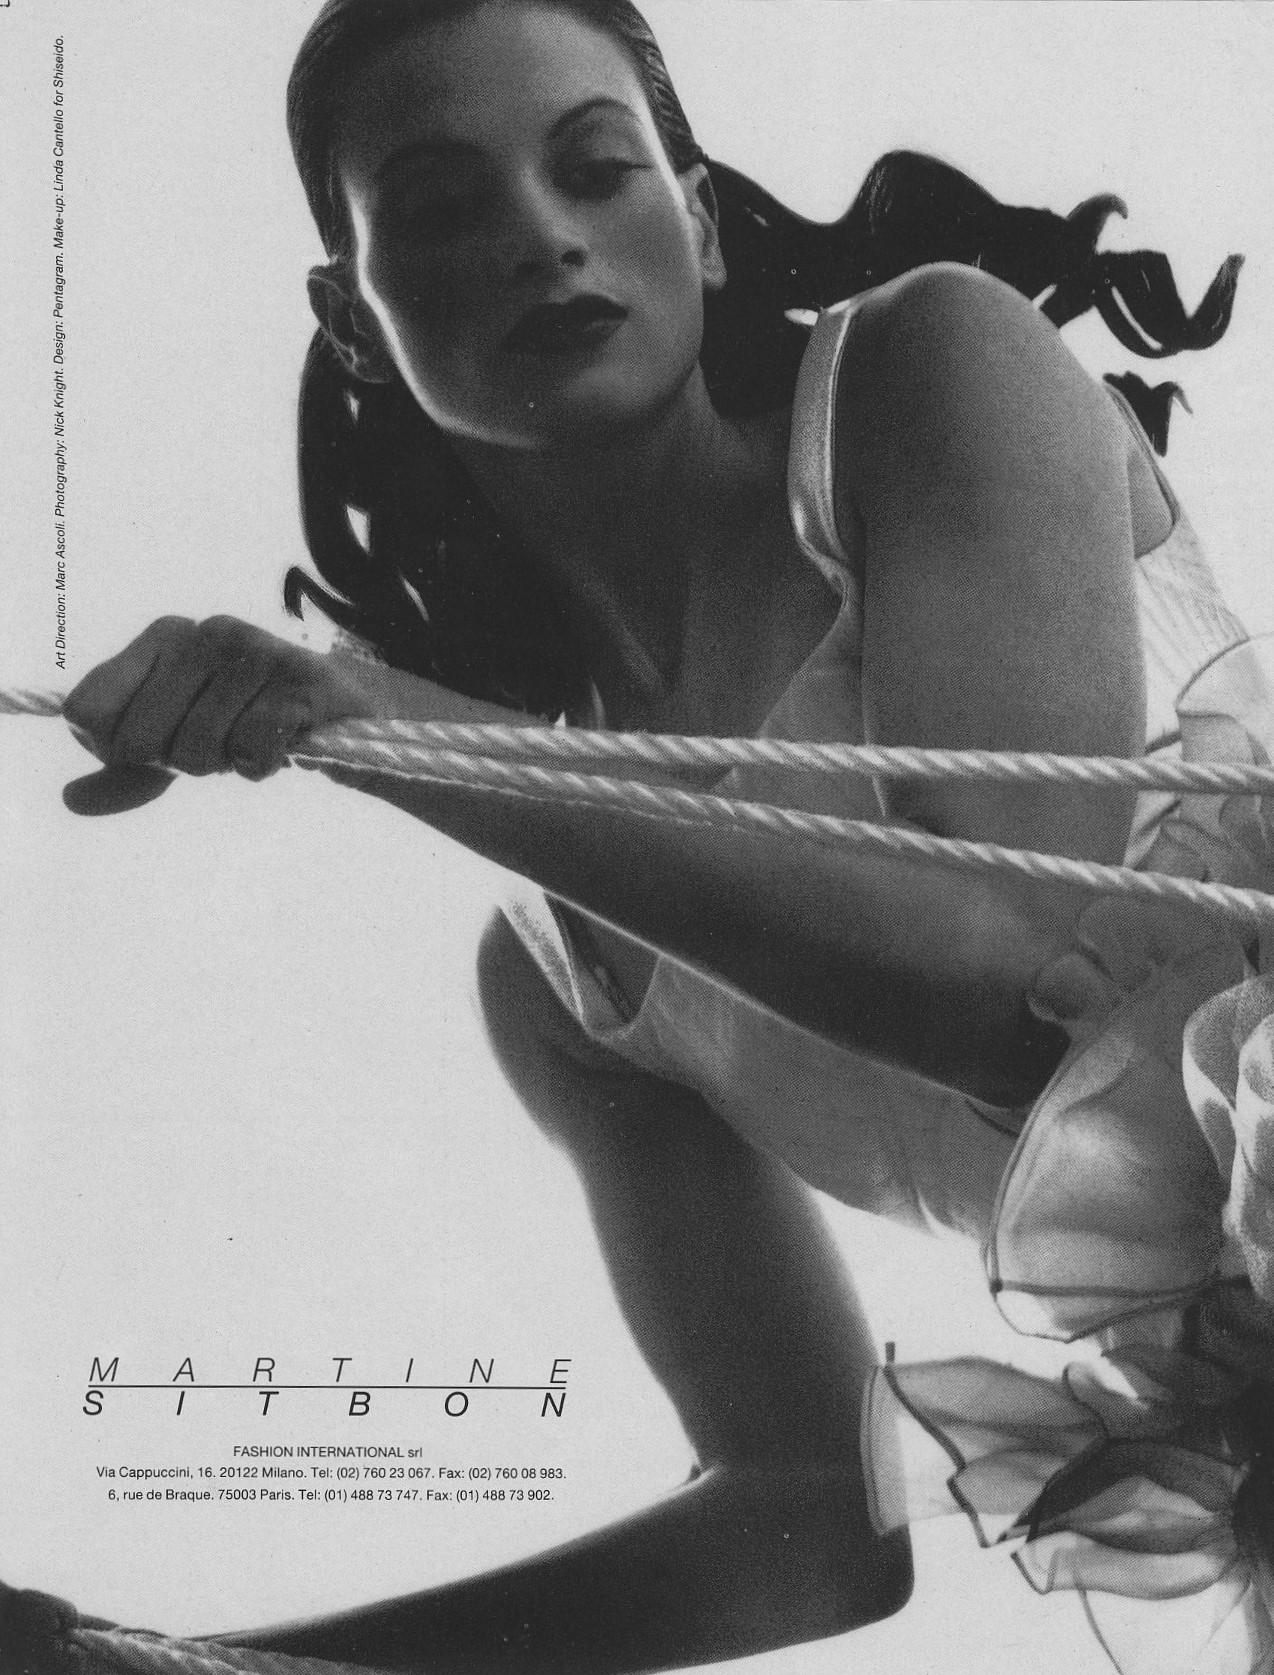 KRISTEN MCMENAMY | MARTINE SITBON AD | PHOTOGRAPHY NICK KNIGHT | ART DIRECTION MARC ASCOLI | 1990